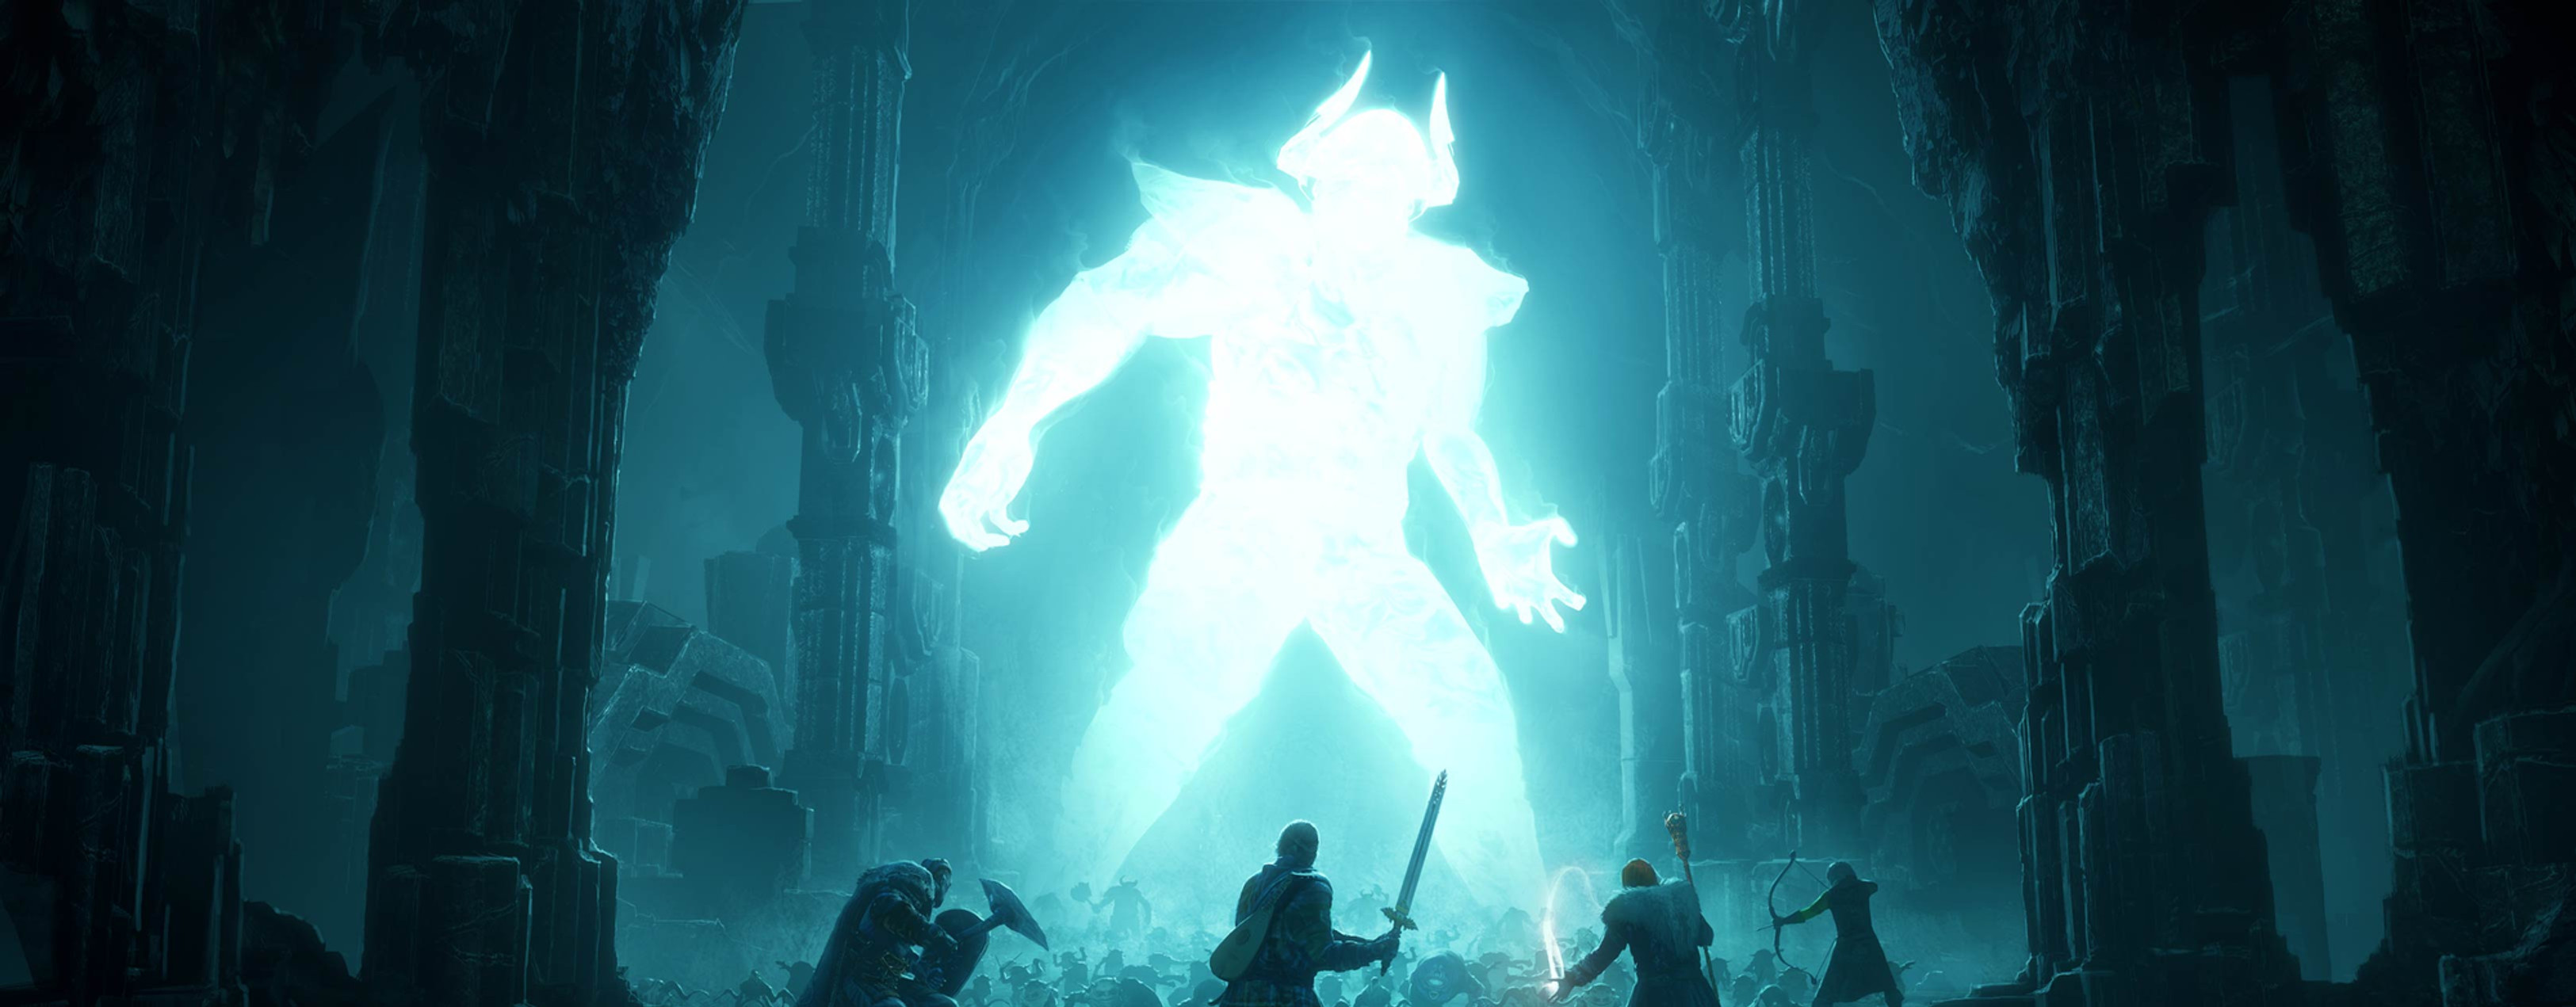 The Bard's Tale IV: Director's Cut | inXile entertainment | Video